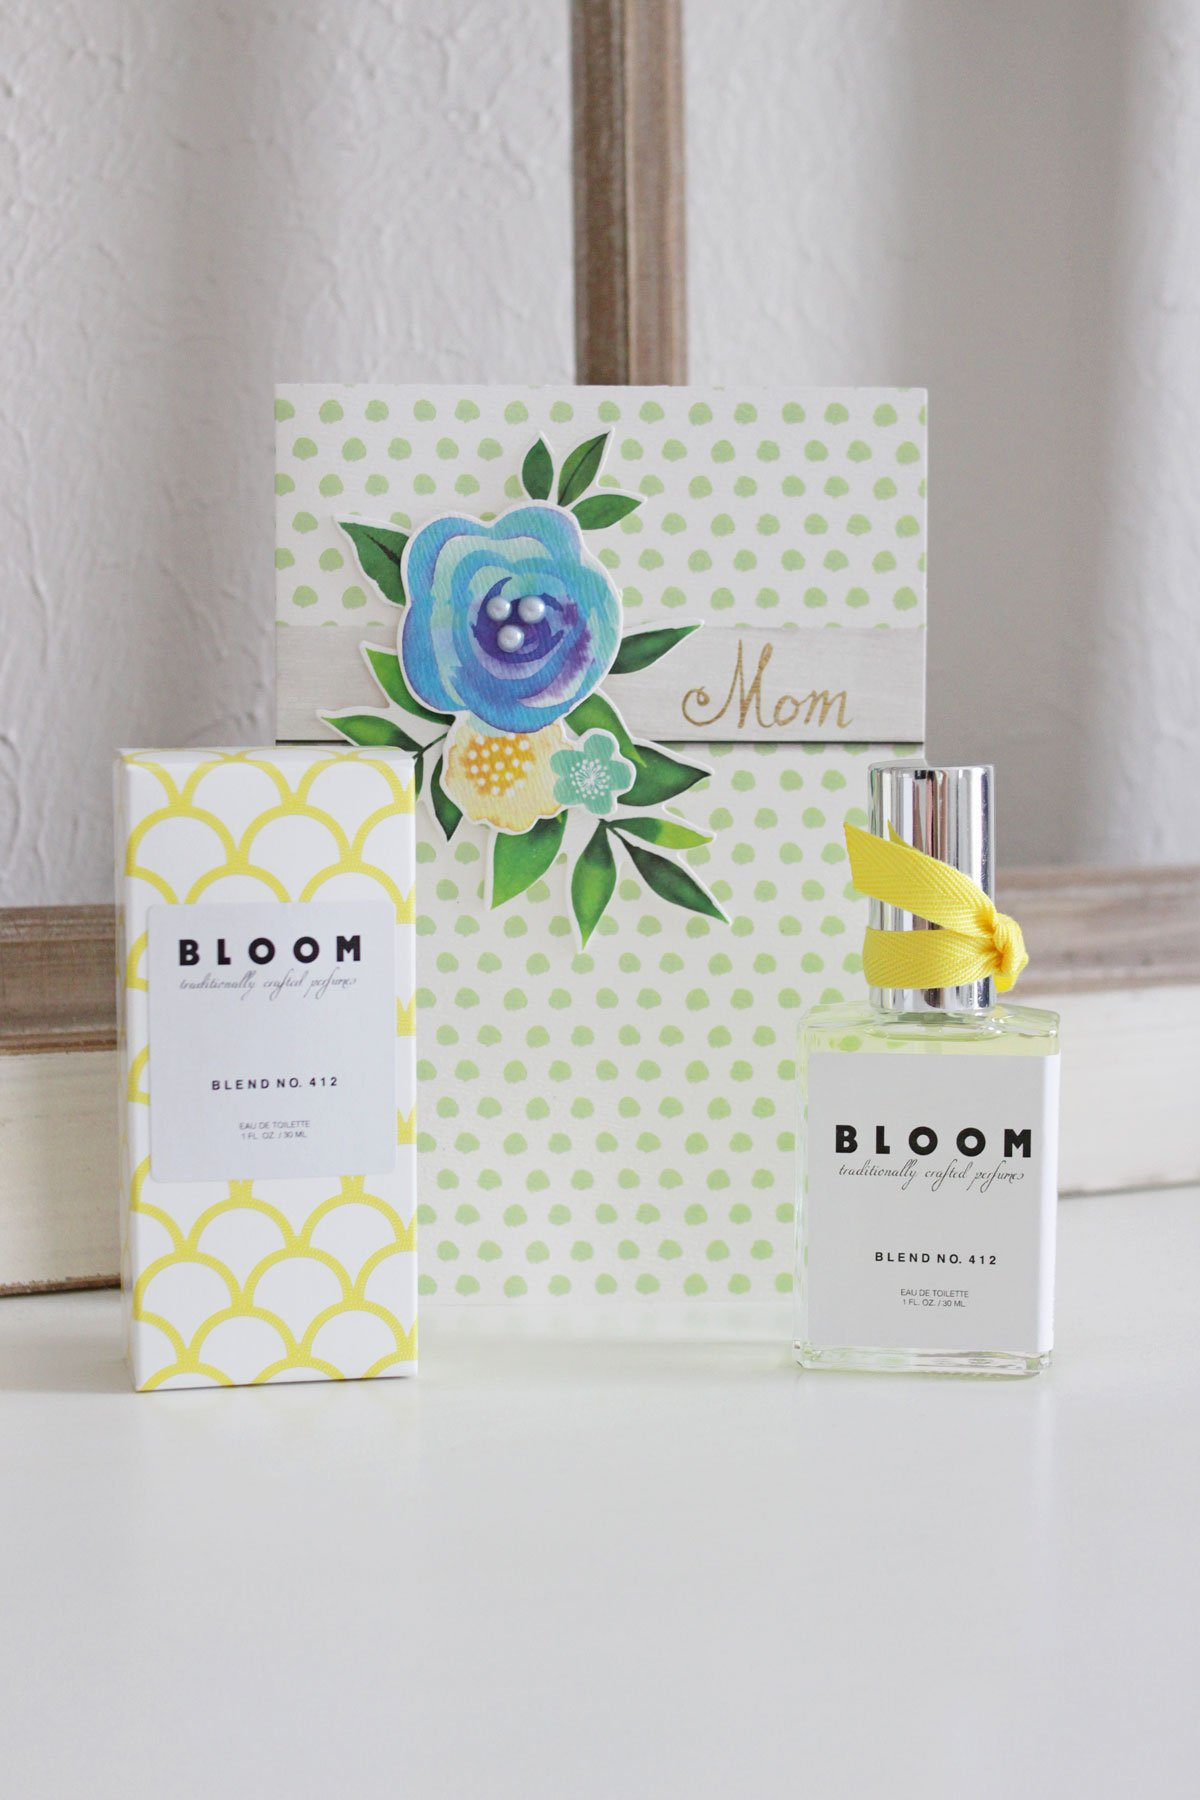 Bloom and Fleur on Etsy No. 412 blend